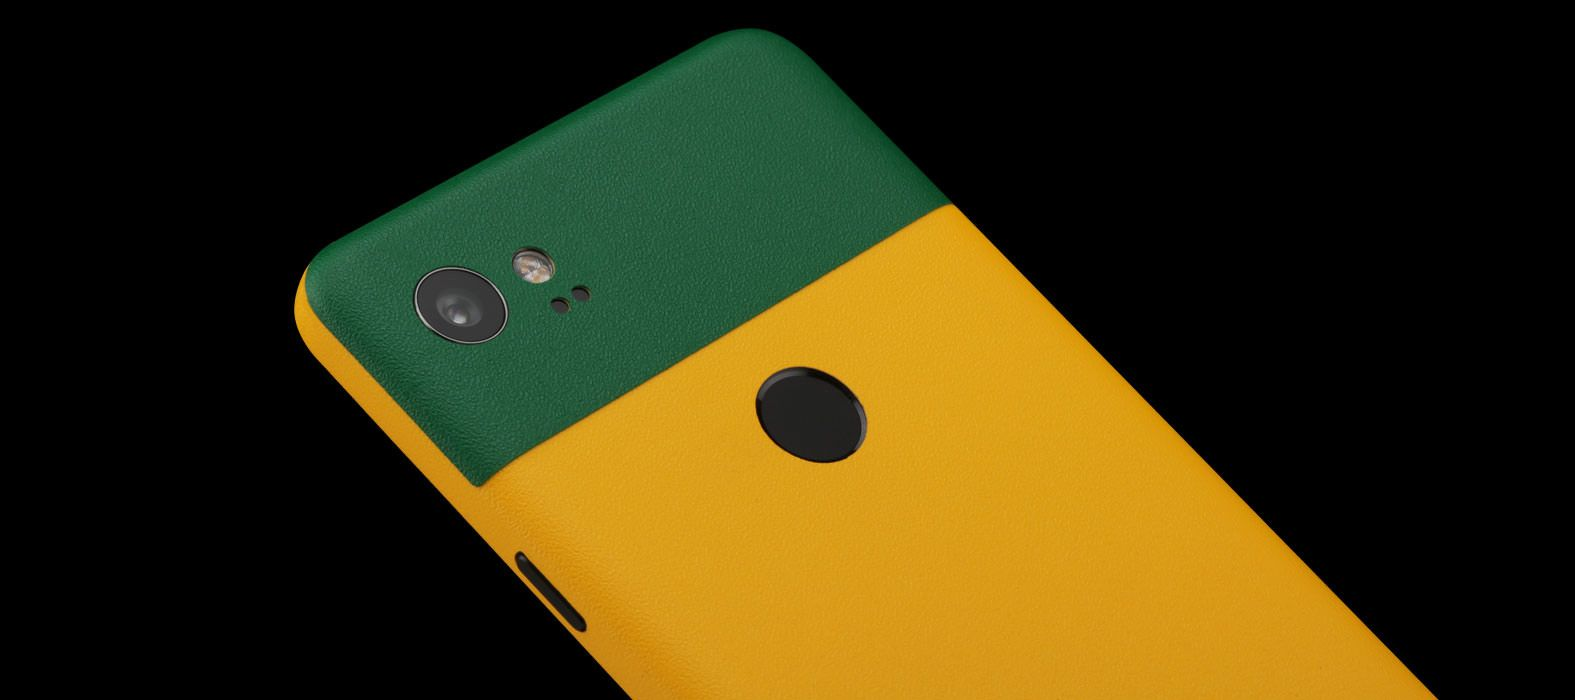 Pixel 2 XL Skins Sandstone Yellow Split Wraps & Decals